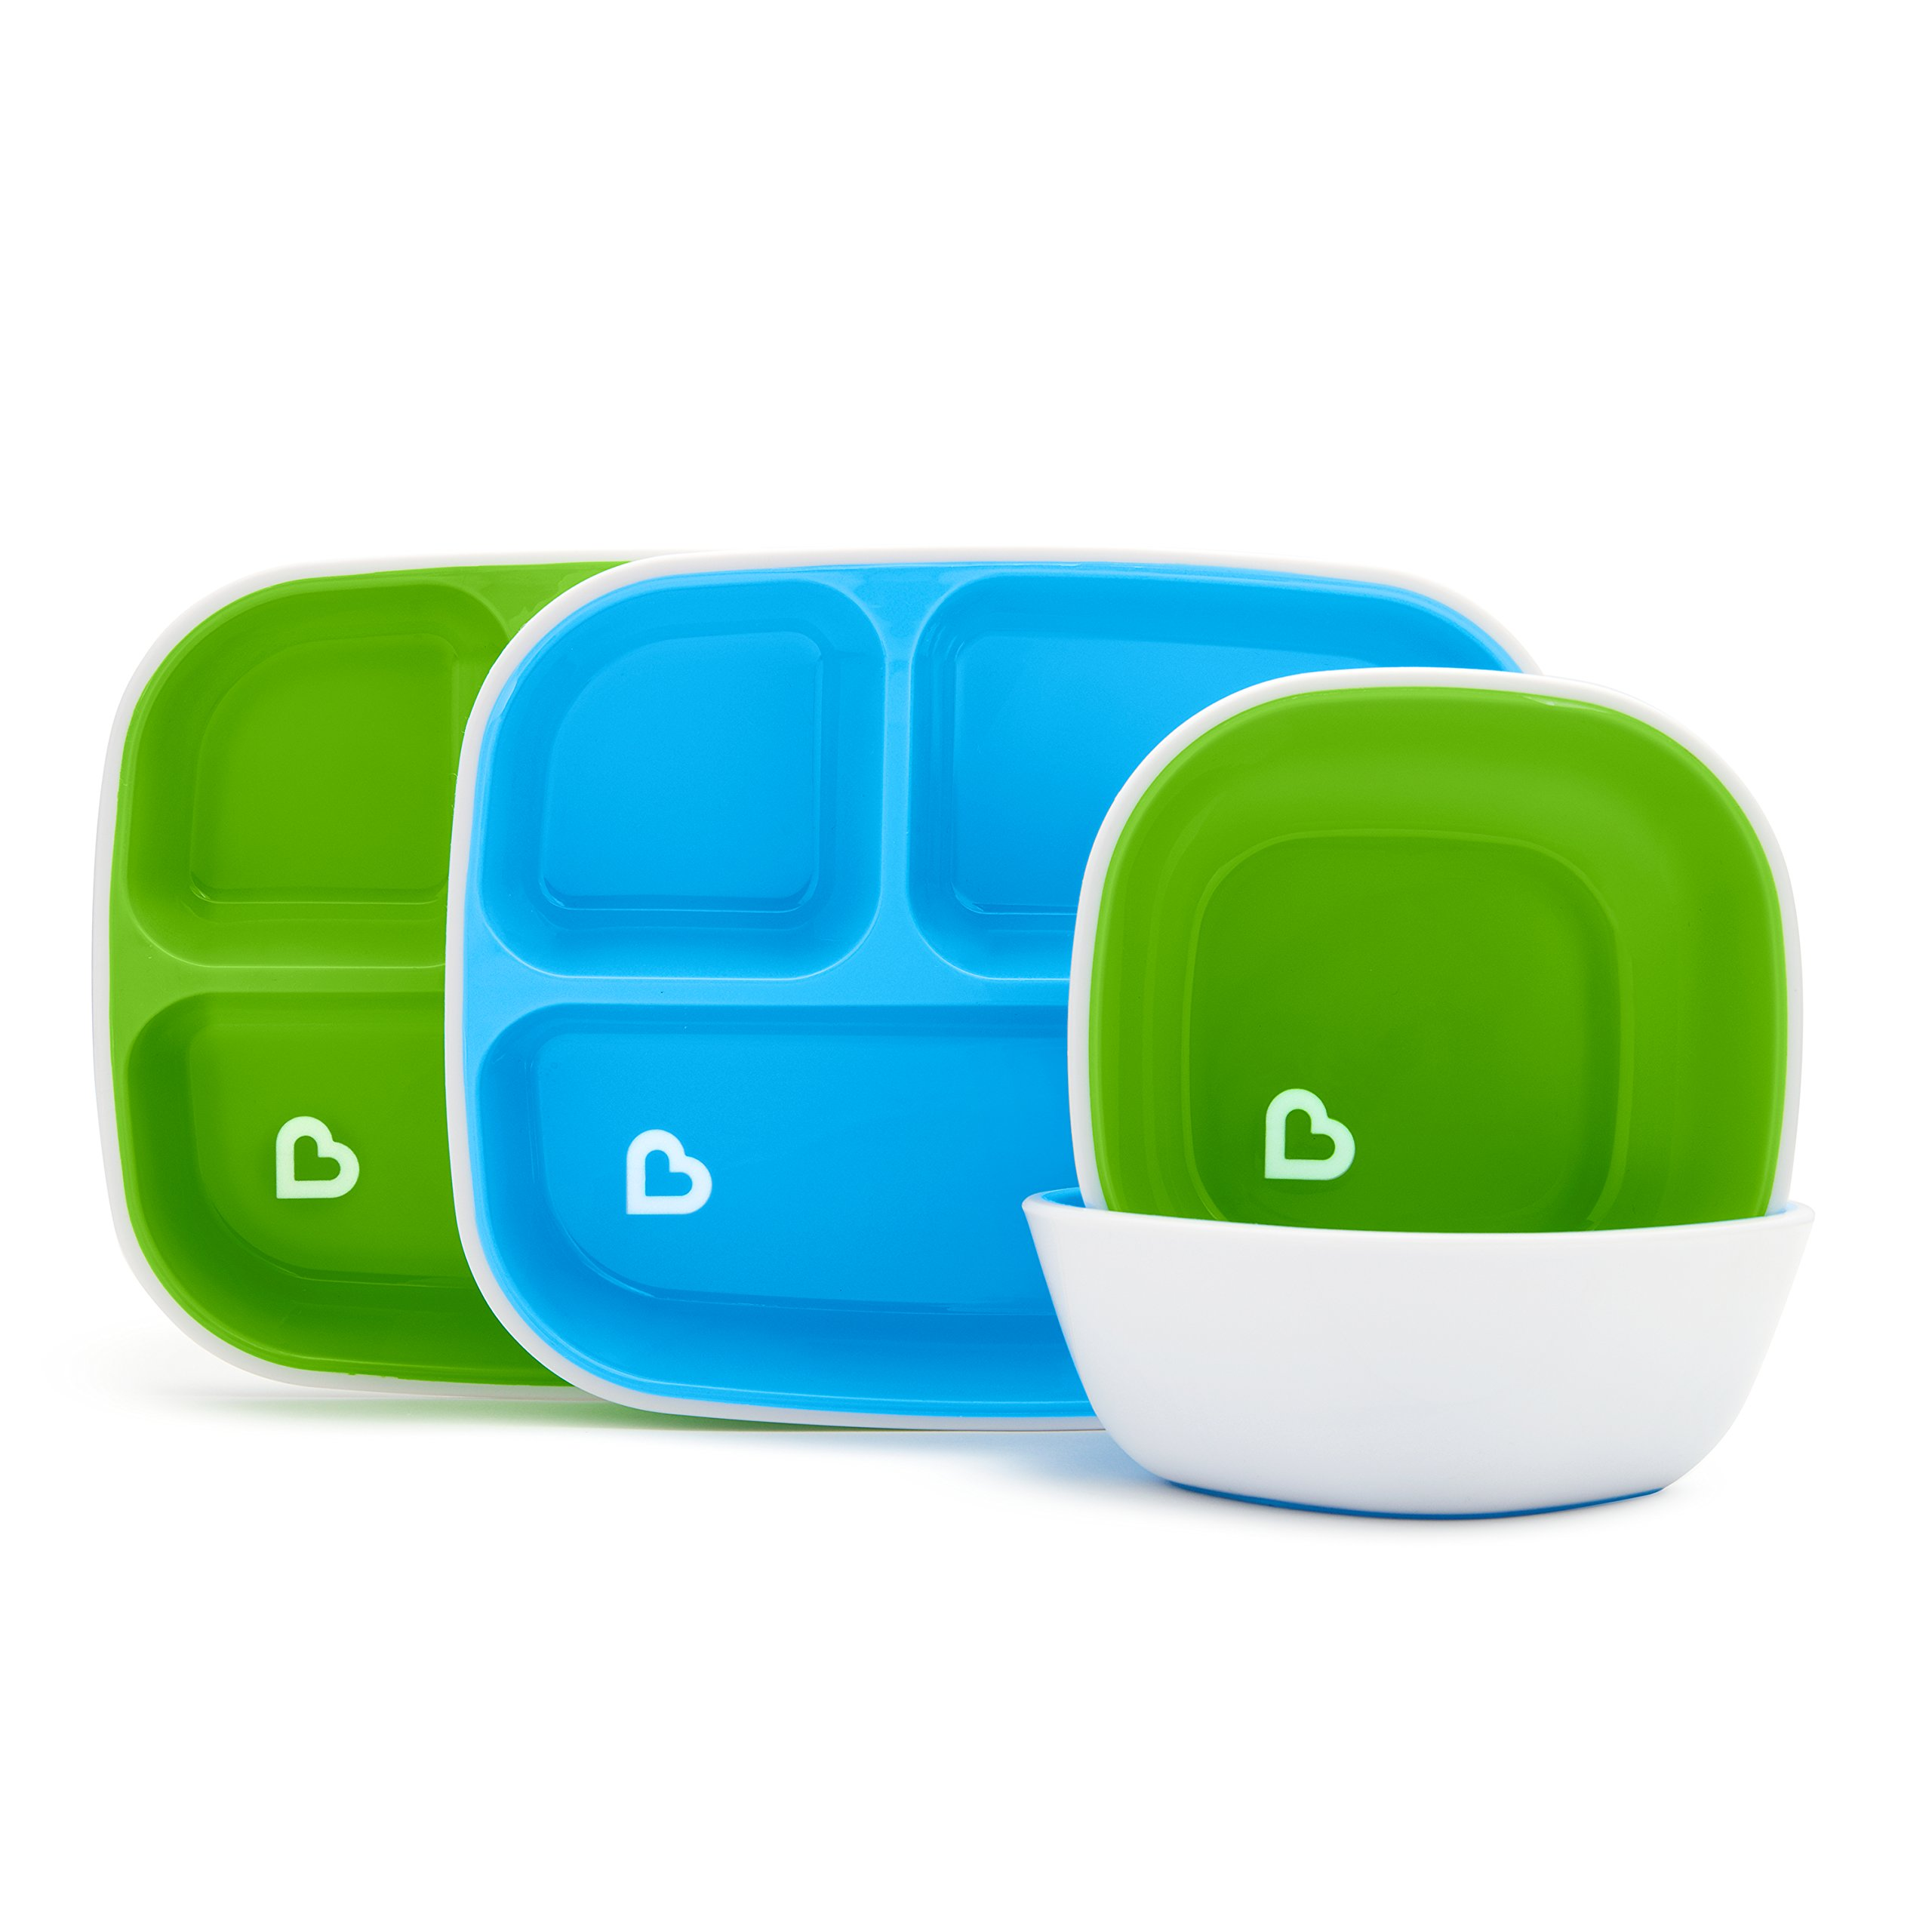 Munchkin Splash 4 Piece Toddler Divided Plate and Bowl Dining Set, Blue/Green by Munchkin